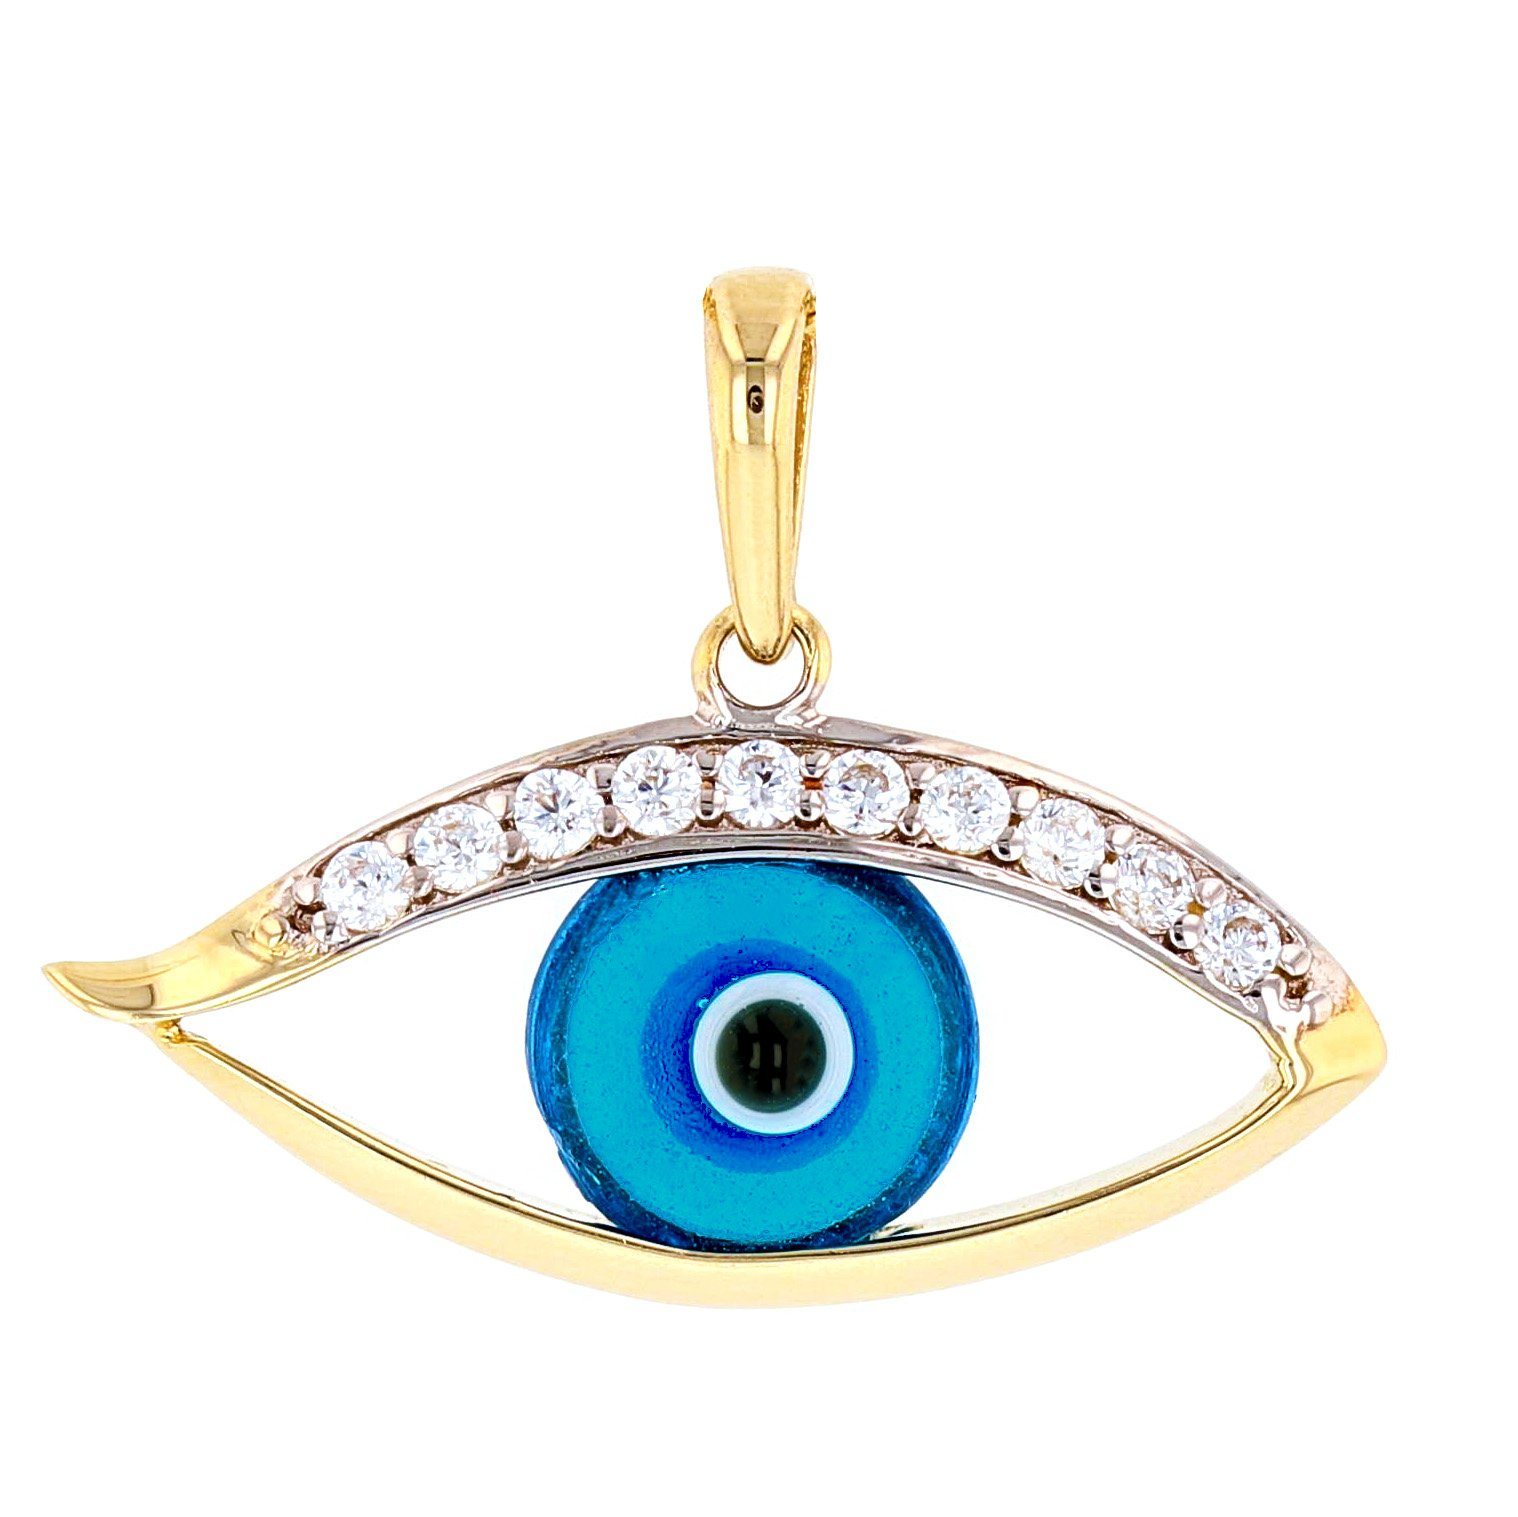 Polished 14k Gold Blue Evil Eye with Cubic Zirconia Charm Pendant by Evil Eye by Jewelry America